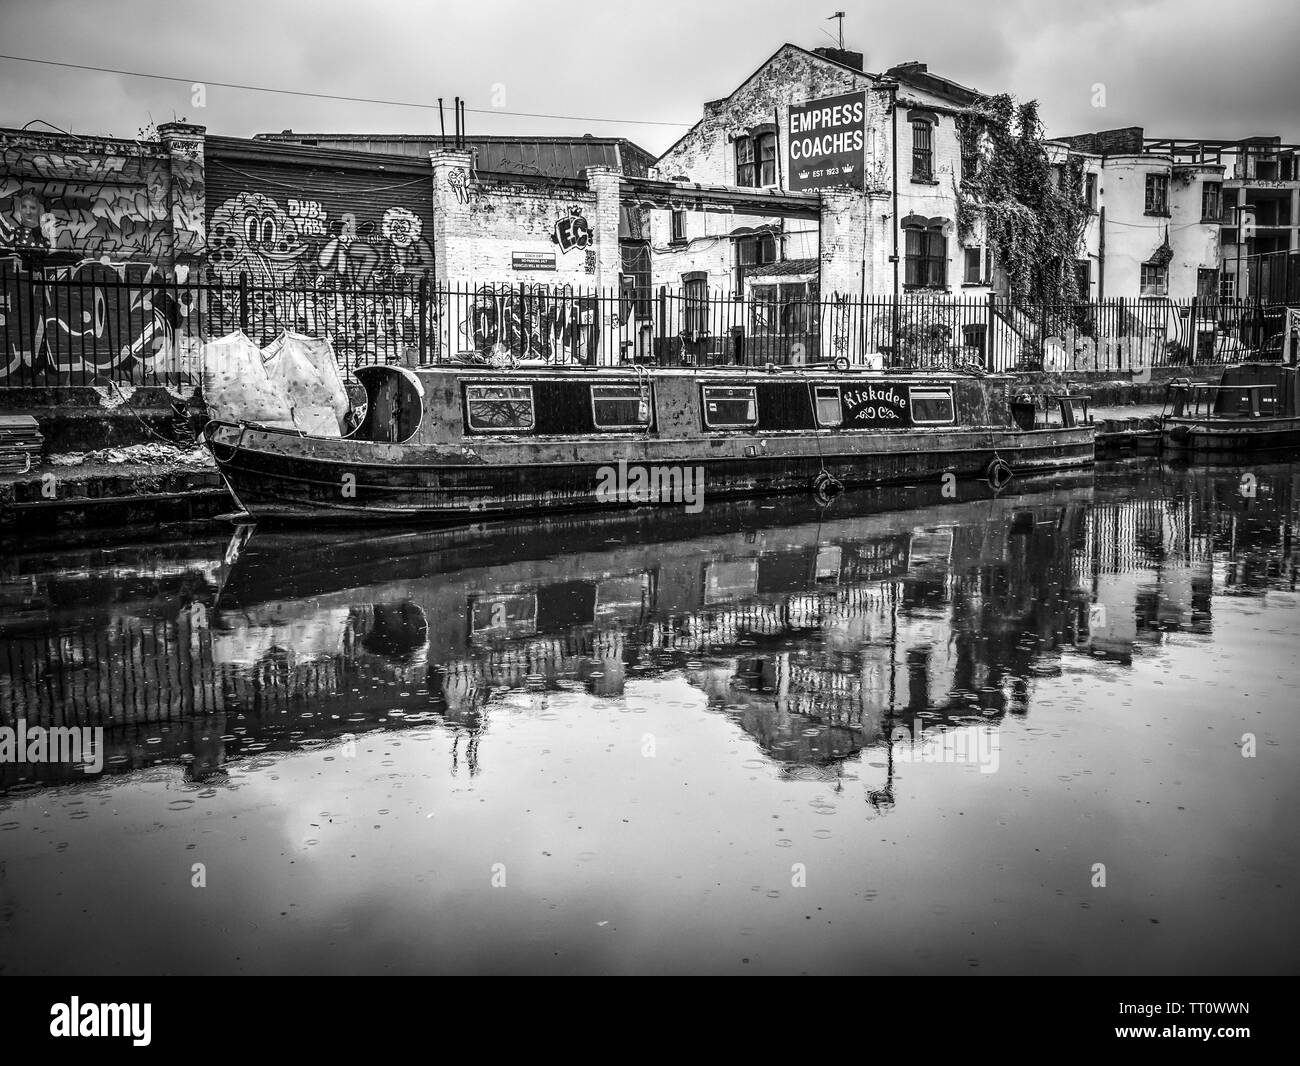 Canal Boat on Regent's Canal Towpath in Black and White - Stock Image